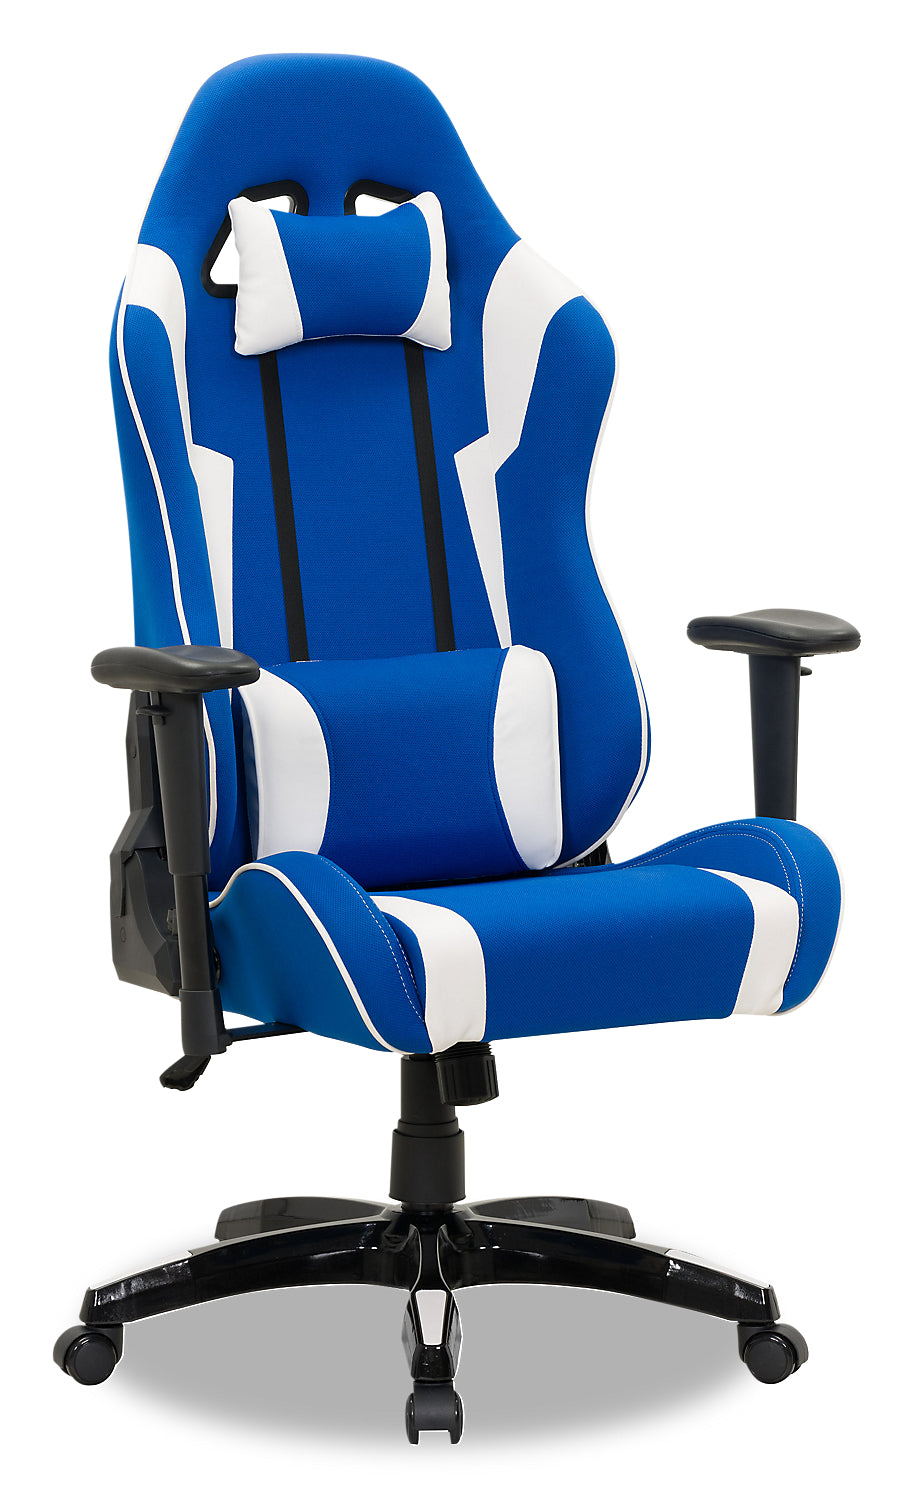 Brilliant Gamer Chair Navy And White Pdpeps Interior Chair Design Pdpepsorg